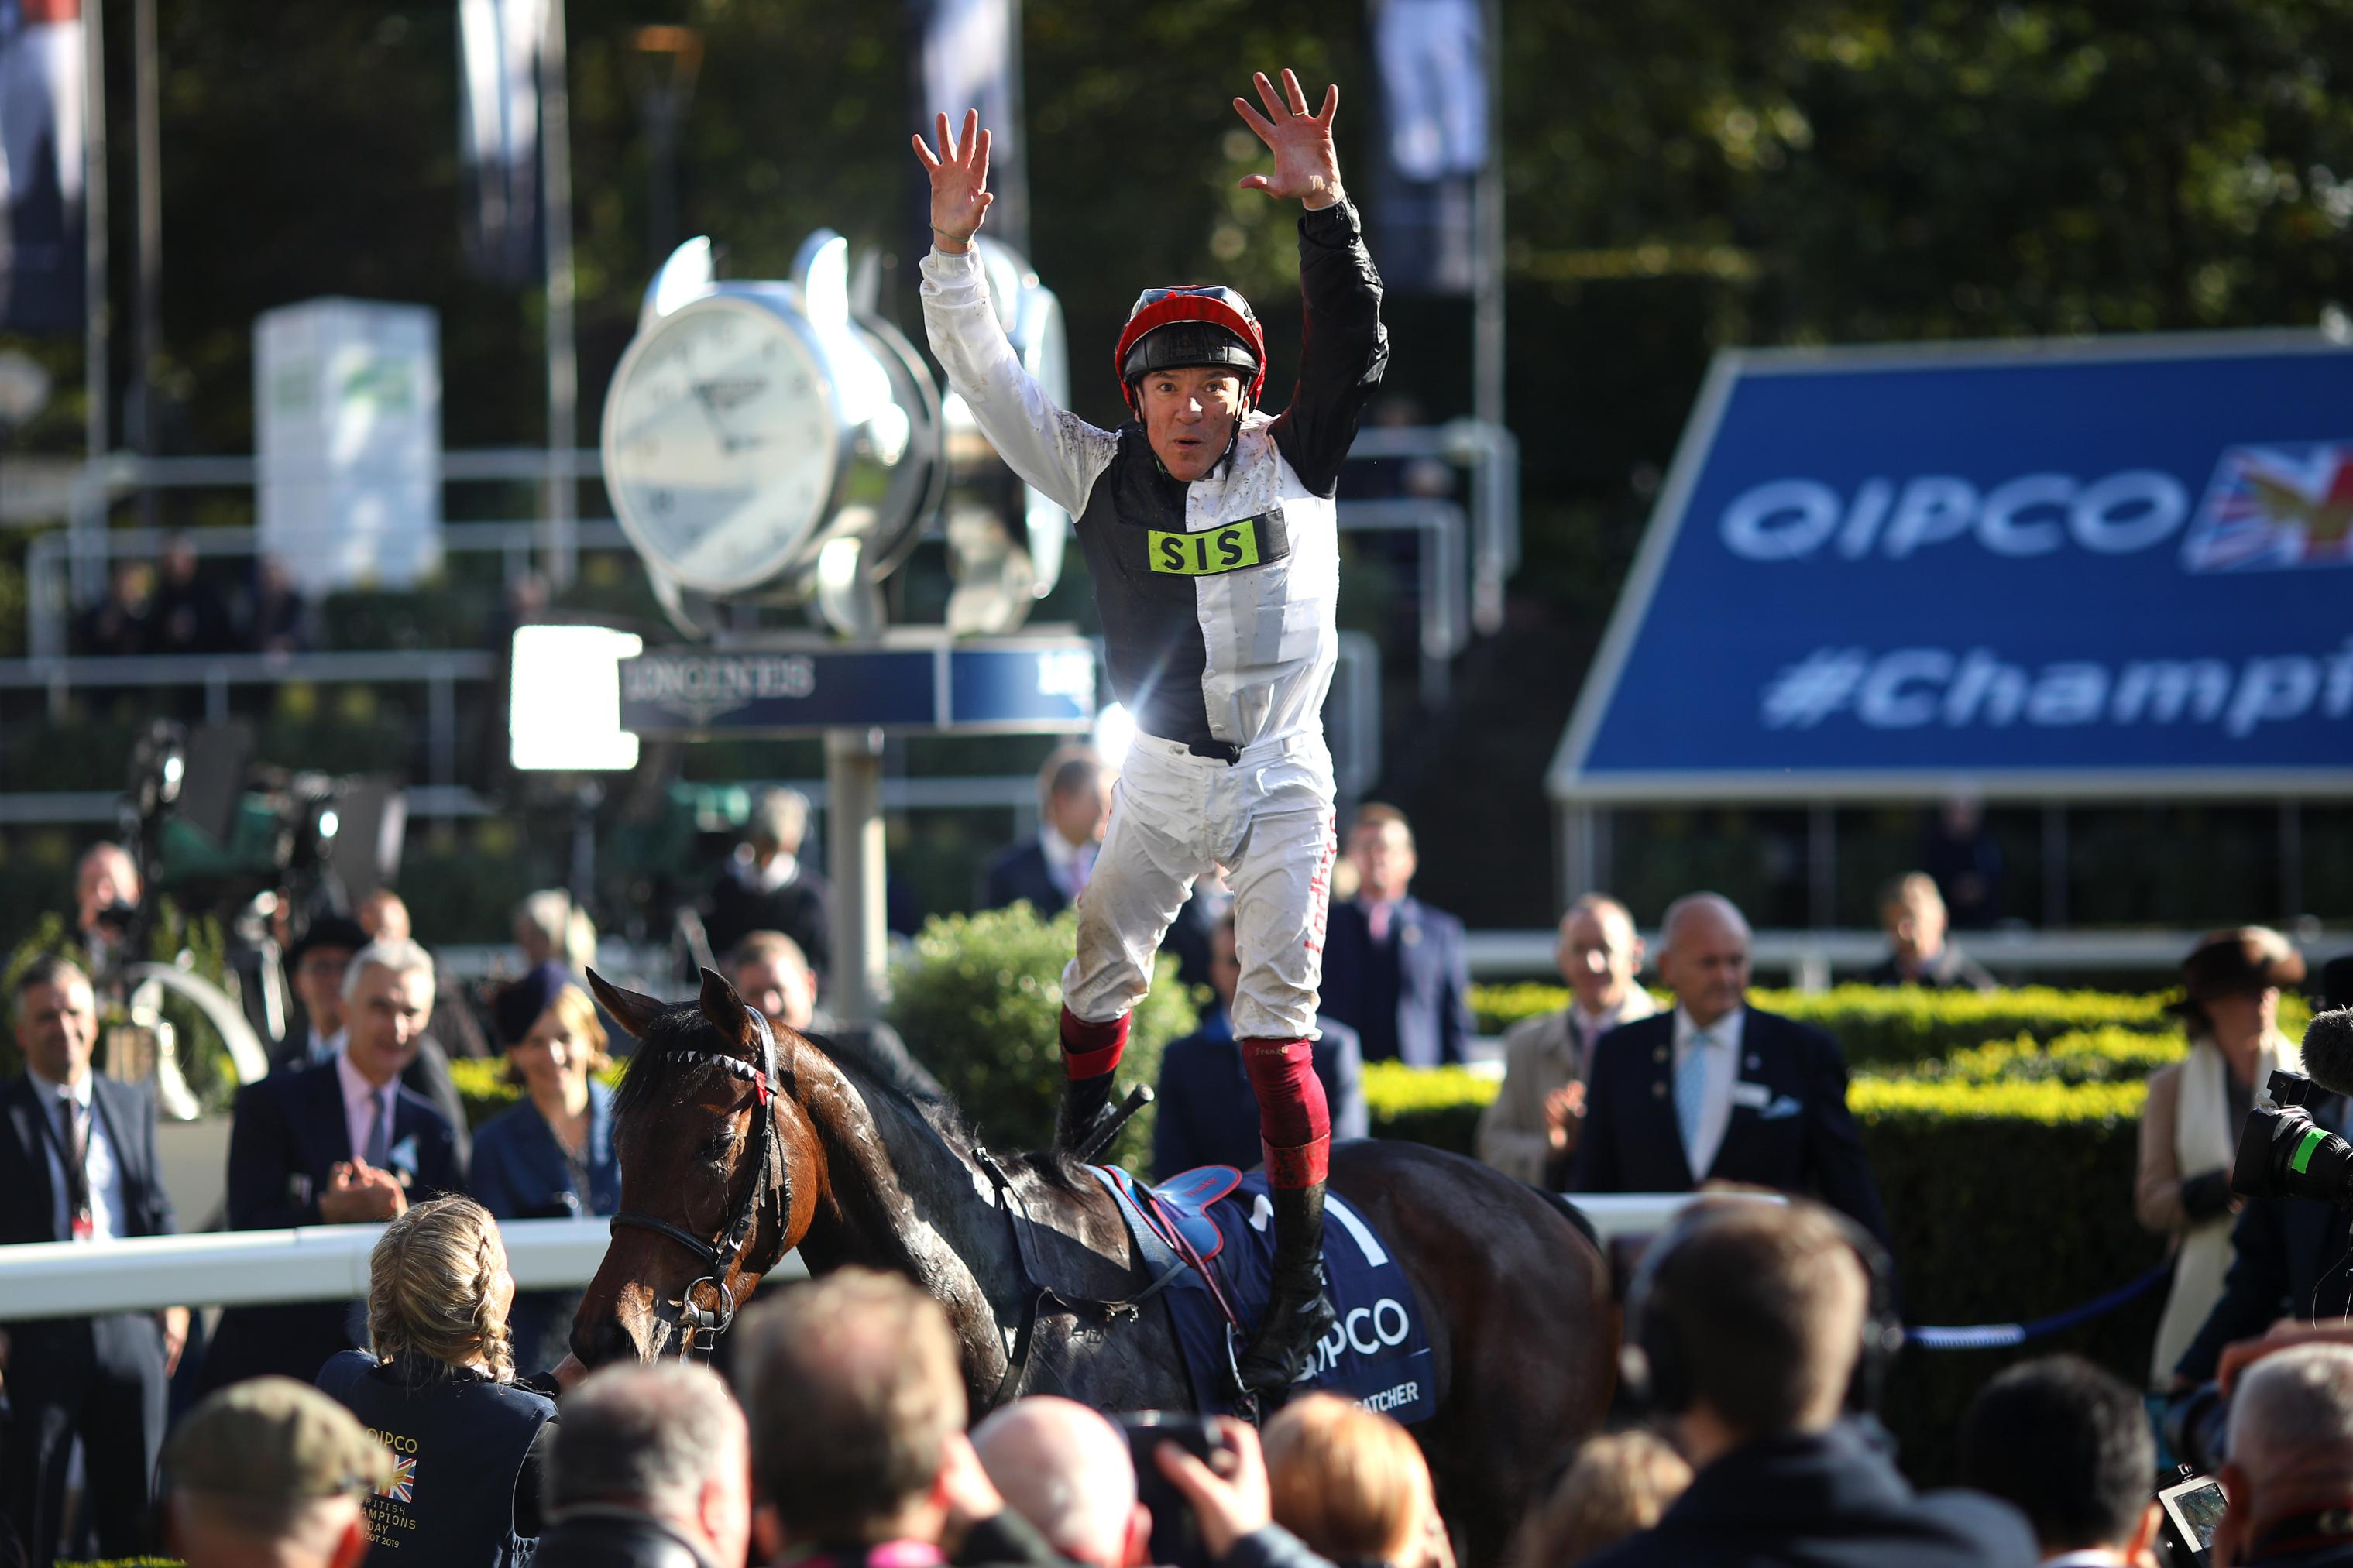 QIPCO British Champions Day